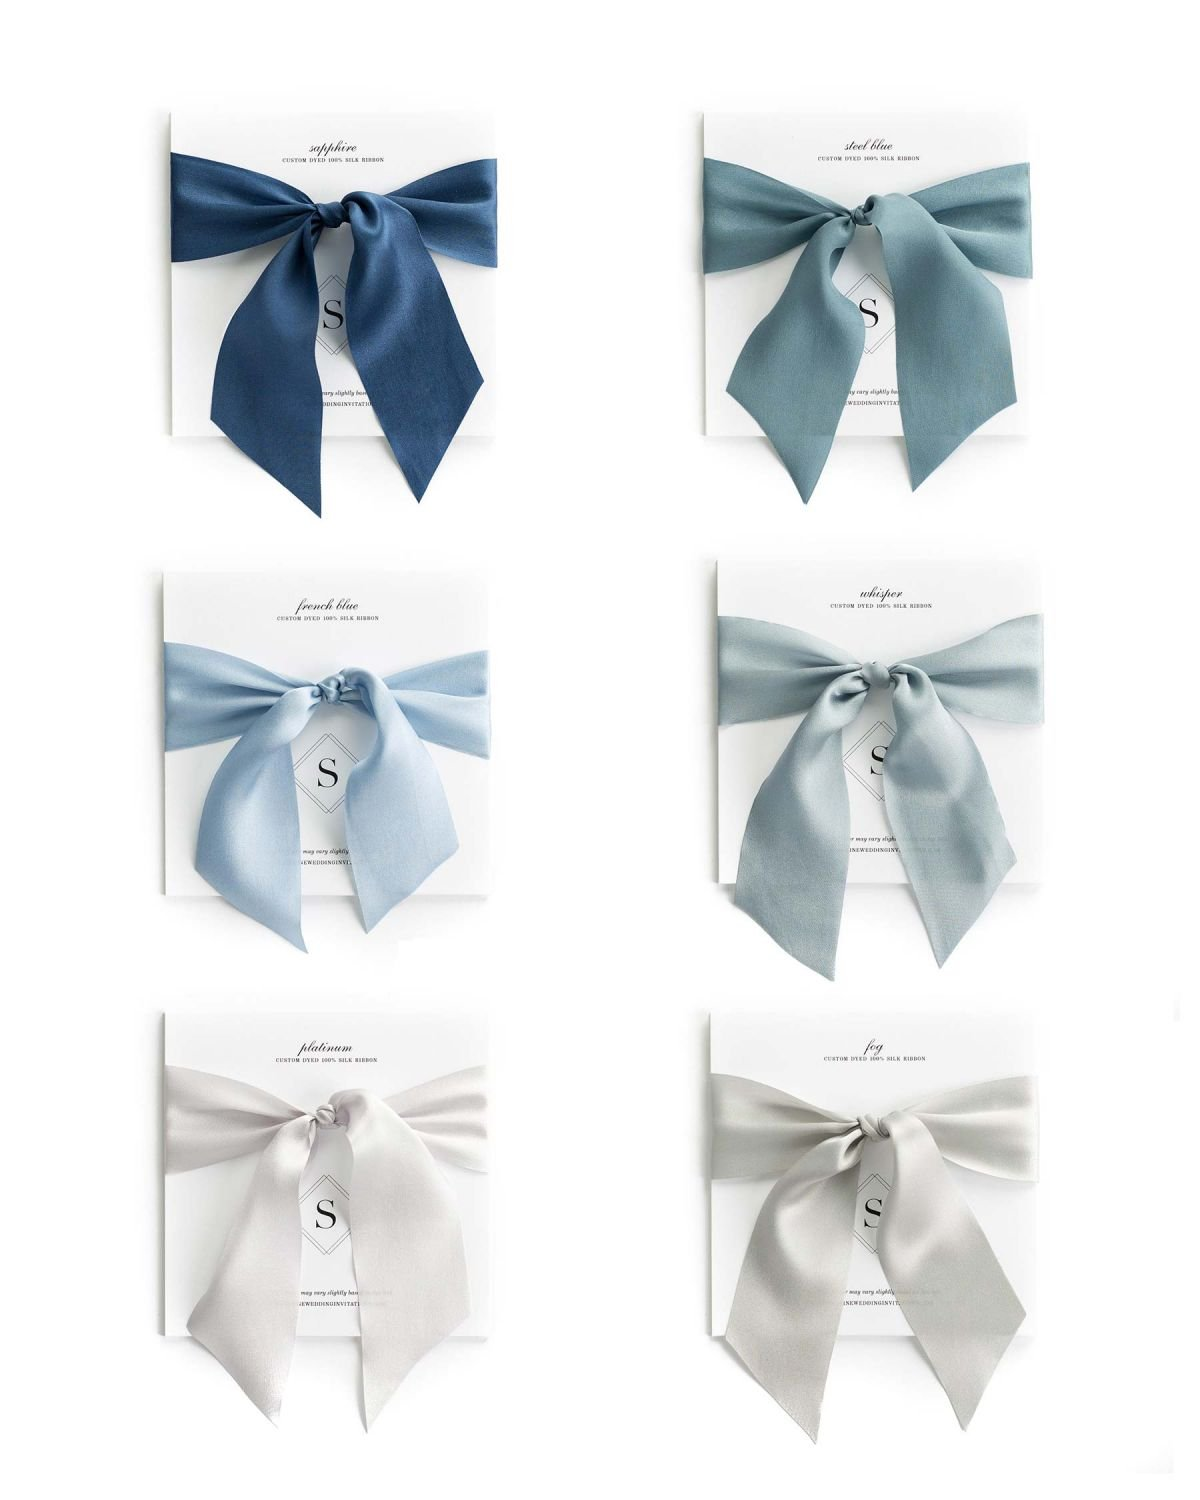 Silk Ribbon Samples in Shades of Blue